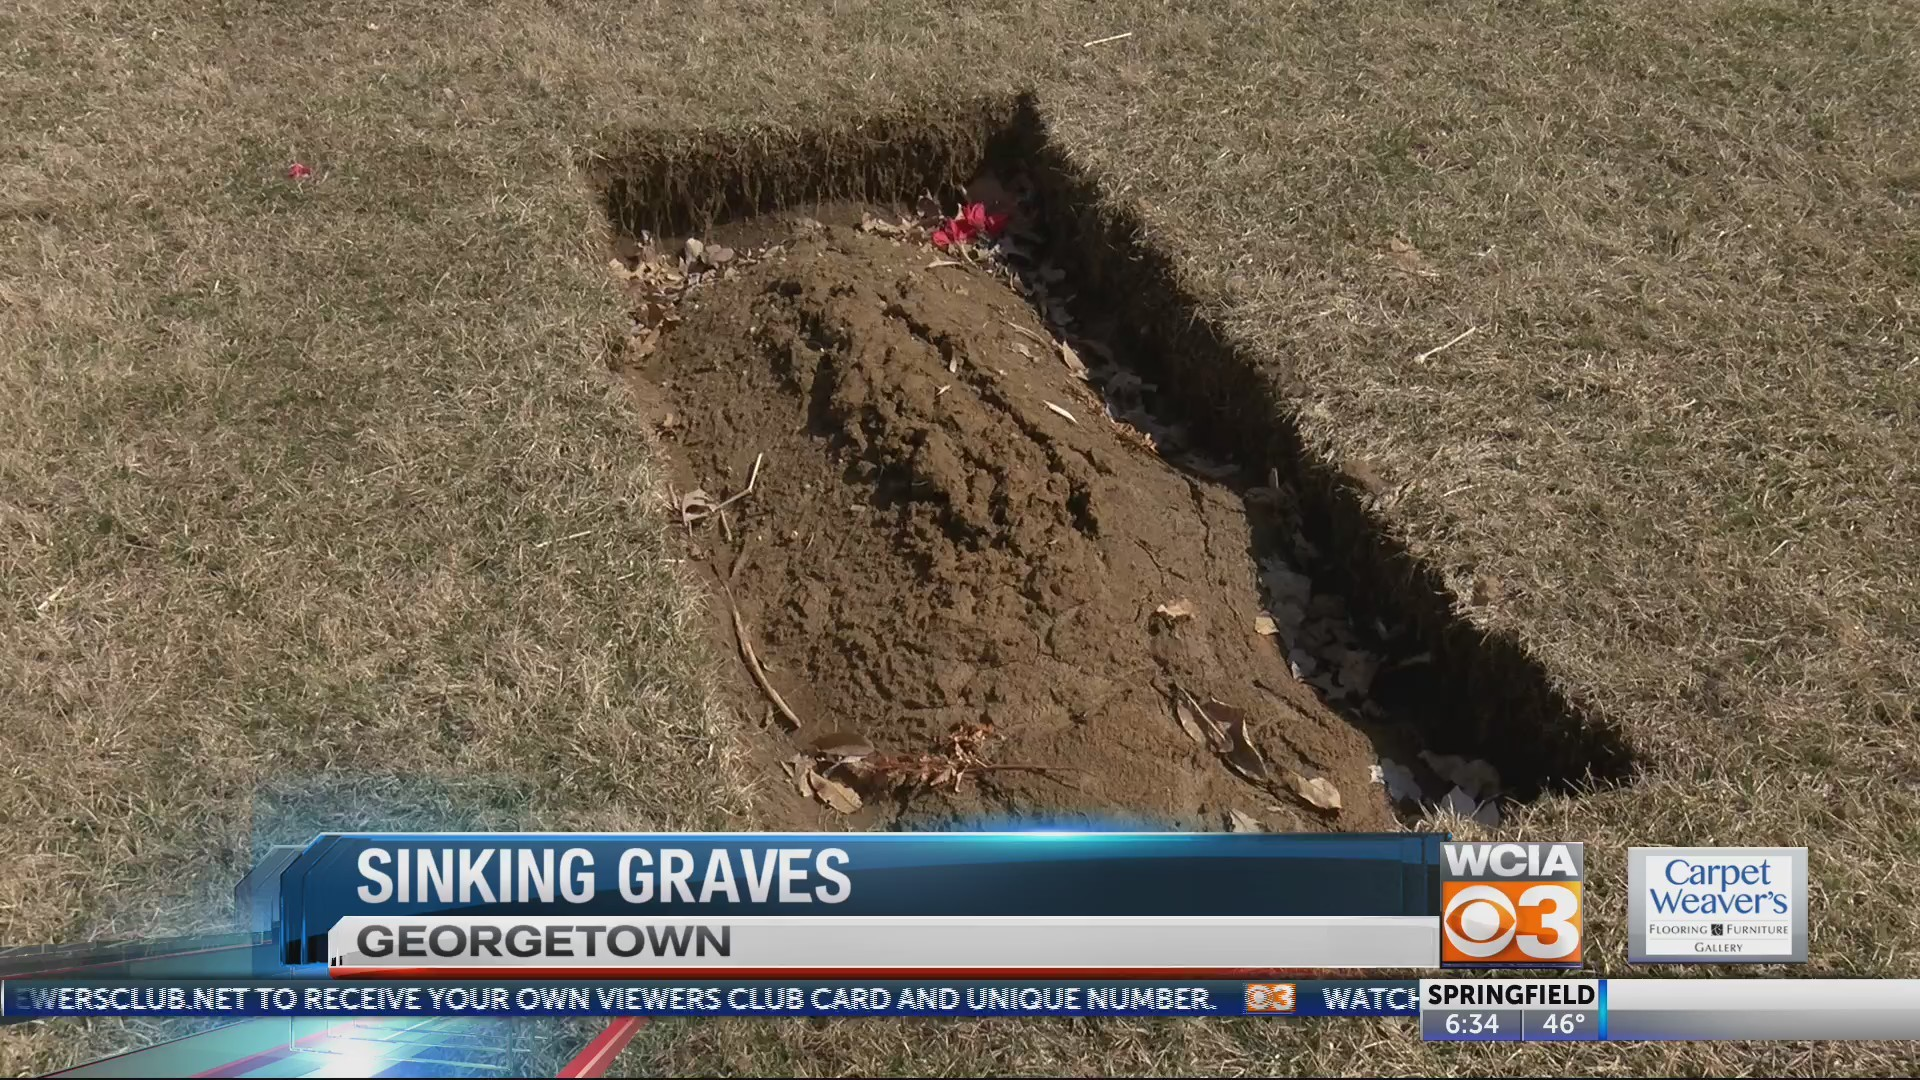 Sinking graves